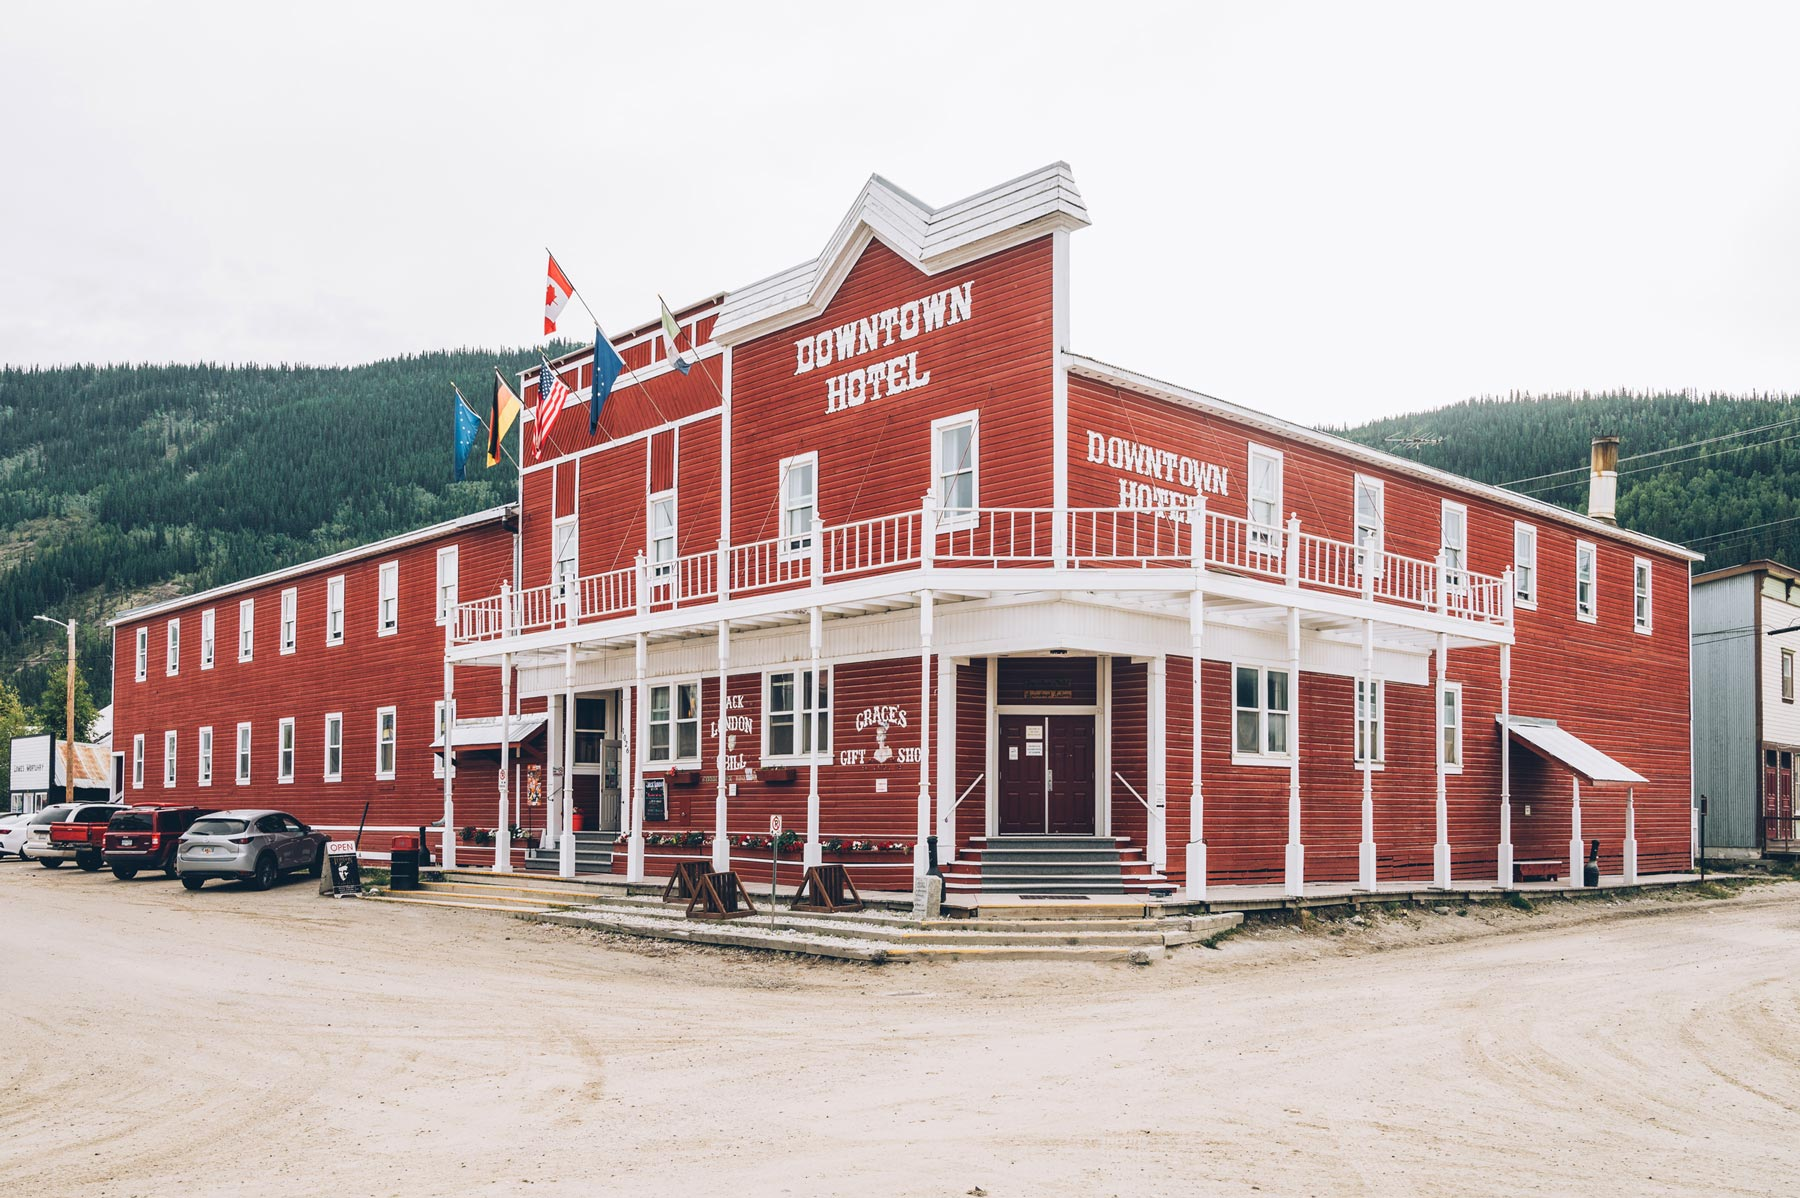 Dawson city, Downtown Hotel